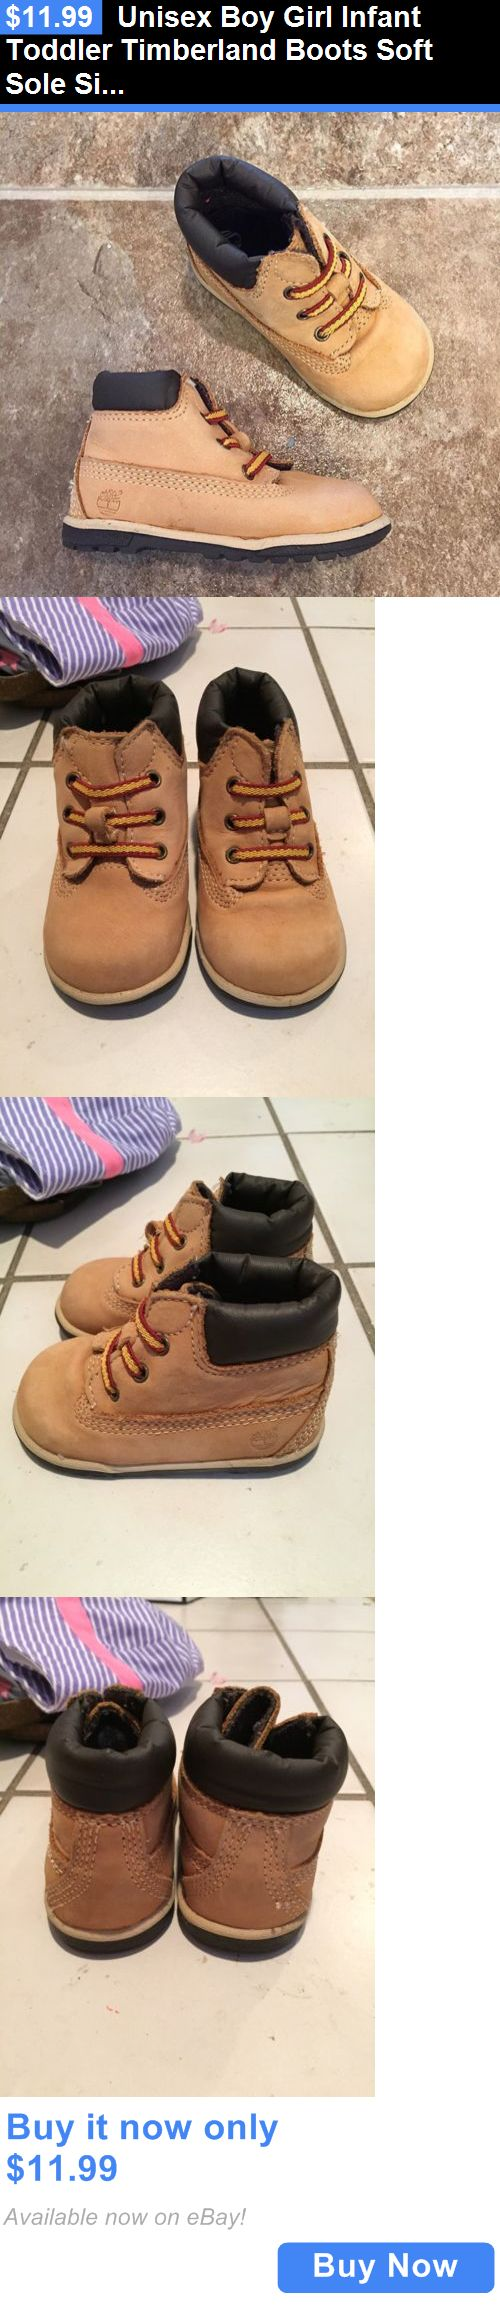 Baby Girls Shoes: Unisex Boy Girl Infant Toddler Timberland Boots Soft Sole Size 3C Crib BUY IT NOW ONLY: $11.99